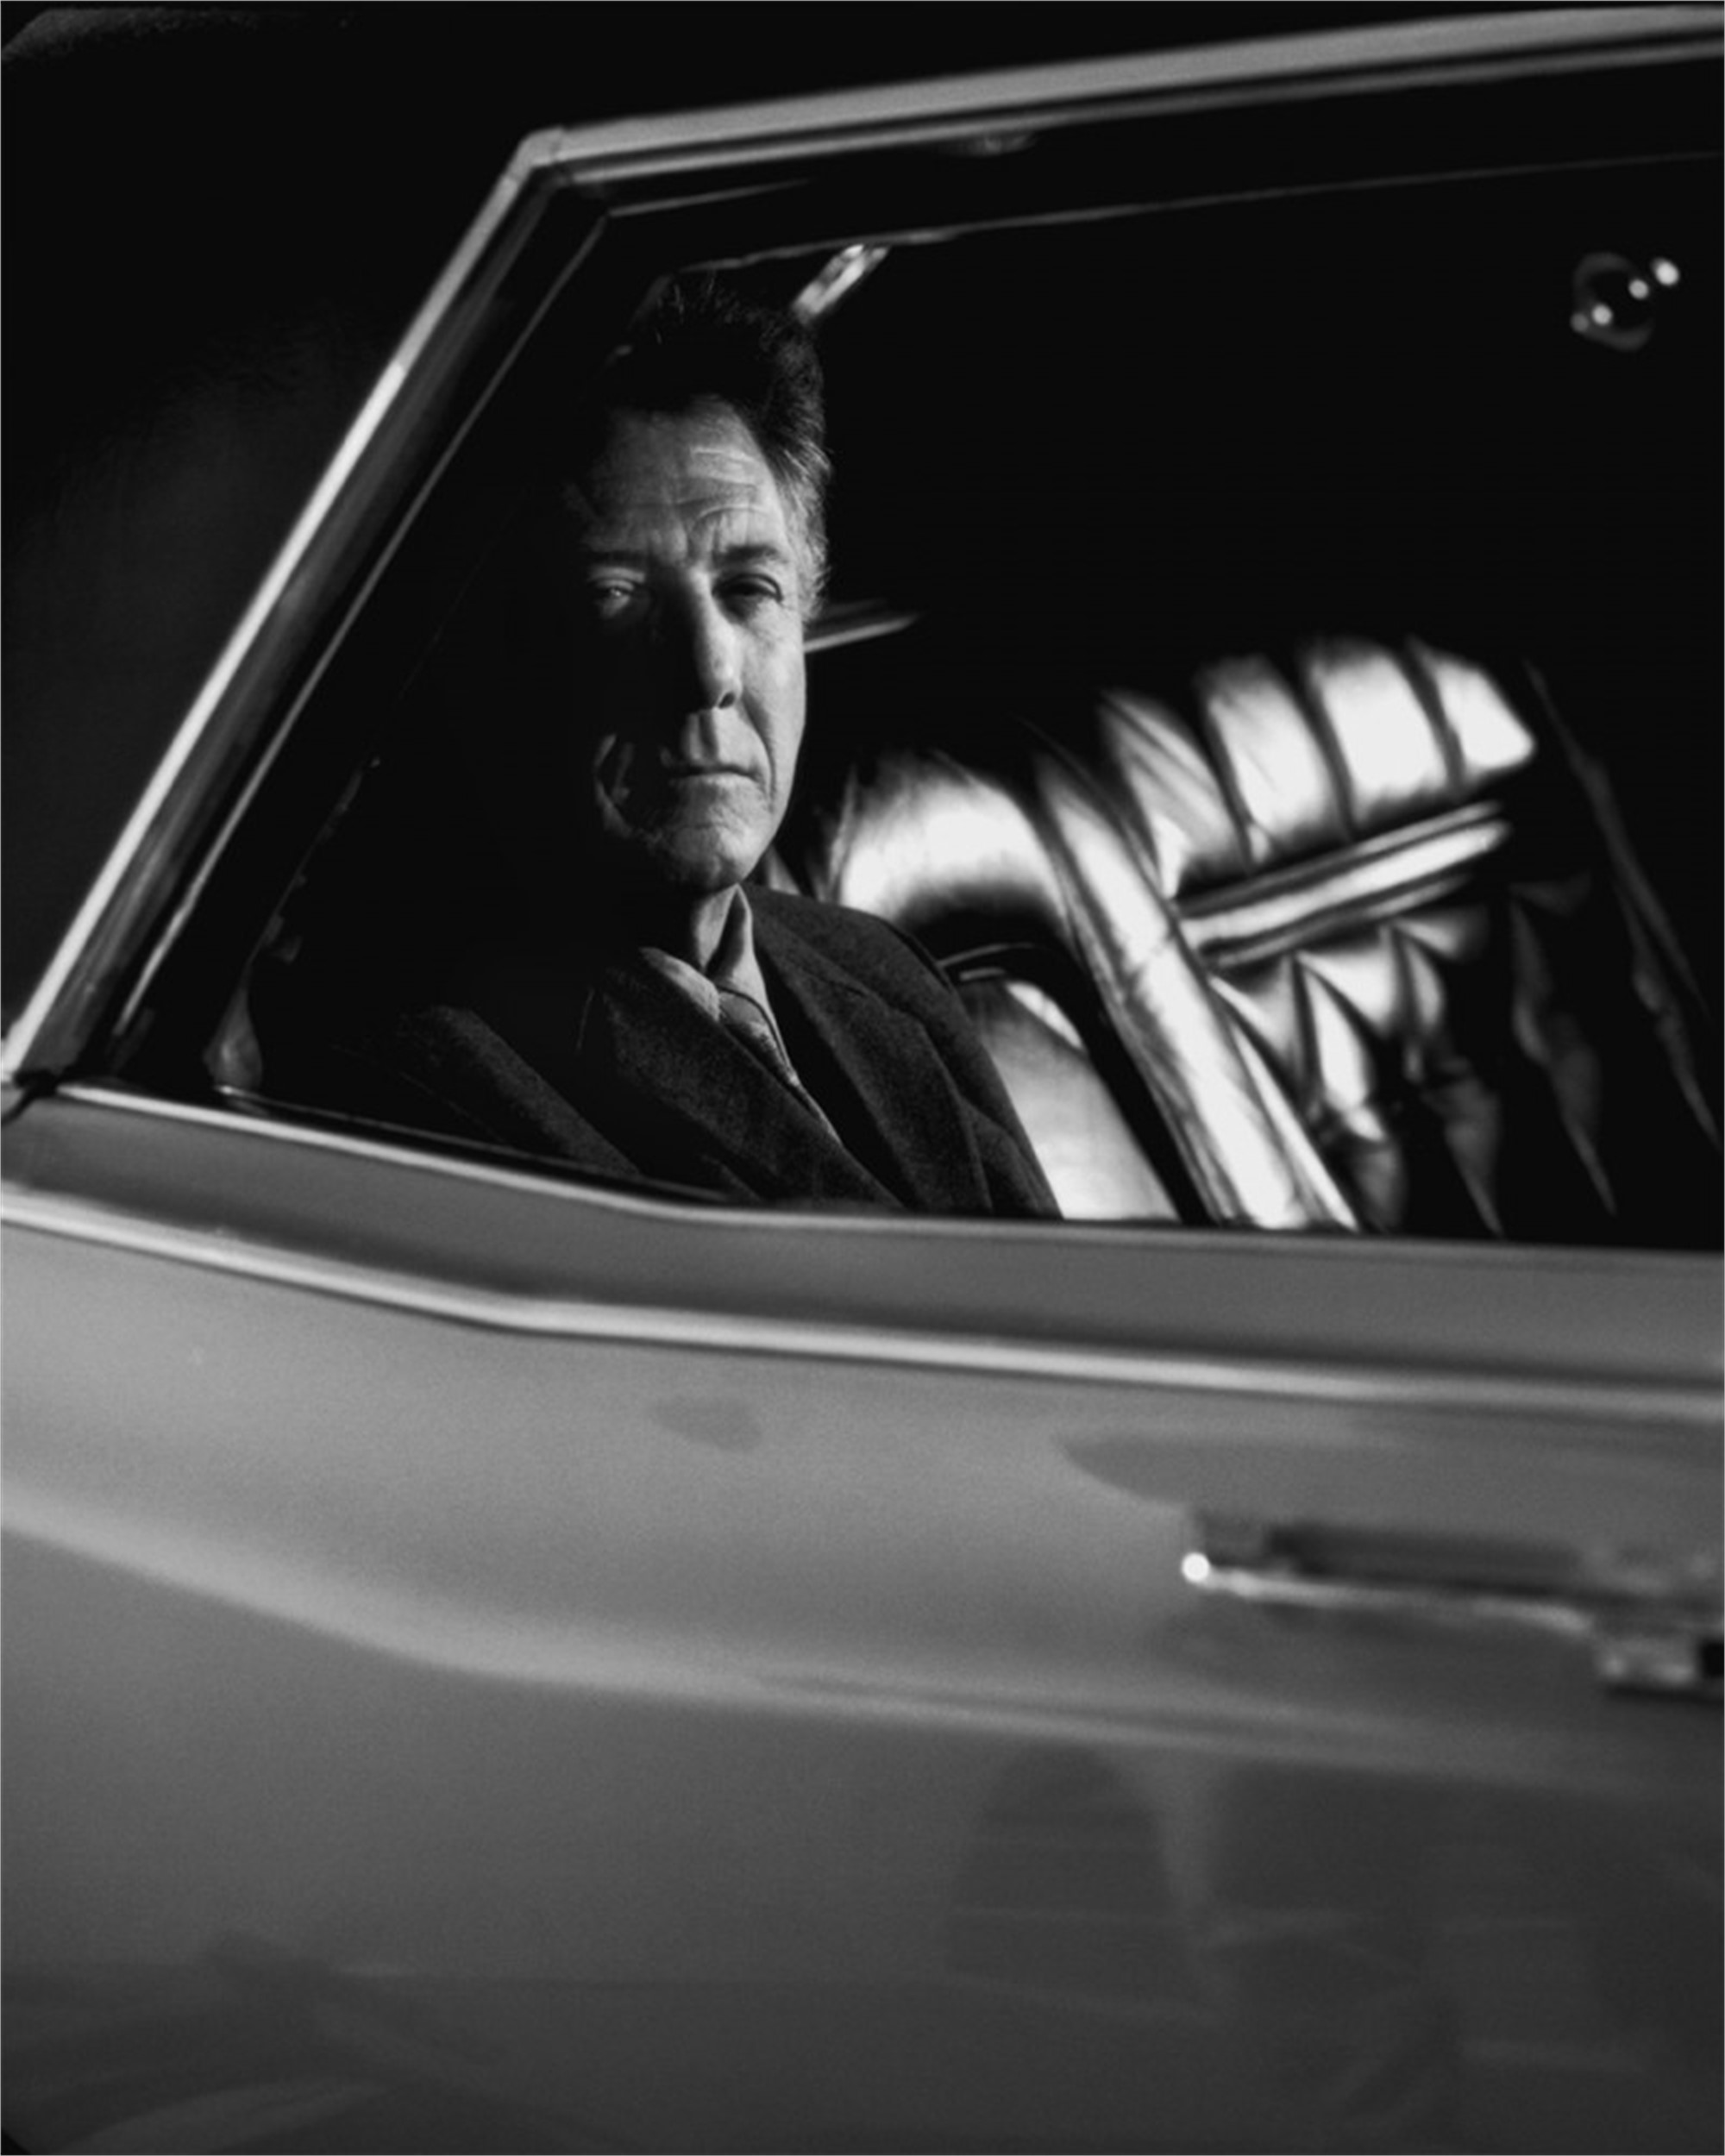 01028 Dustin Hoffman in Car BW by Timothy White